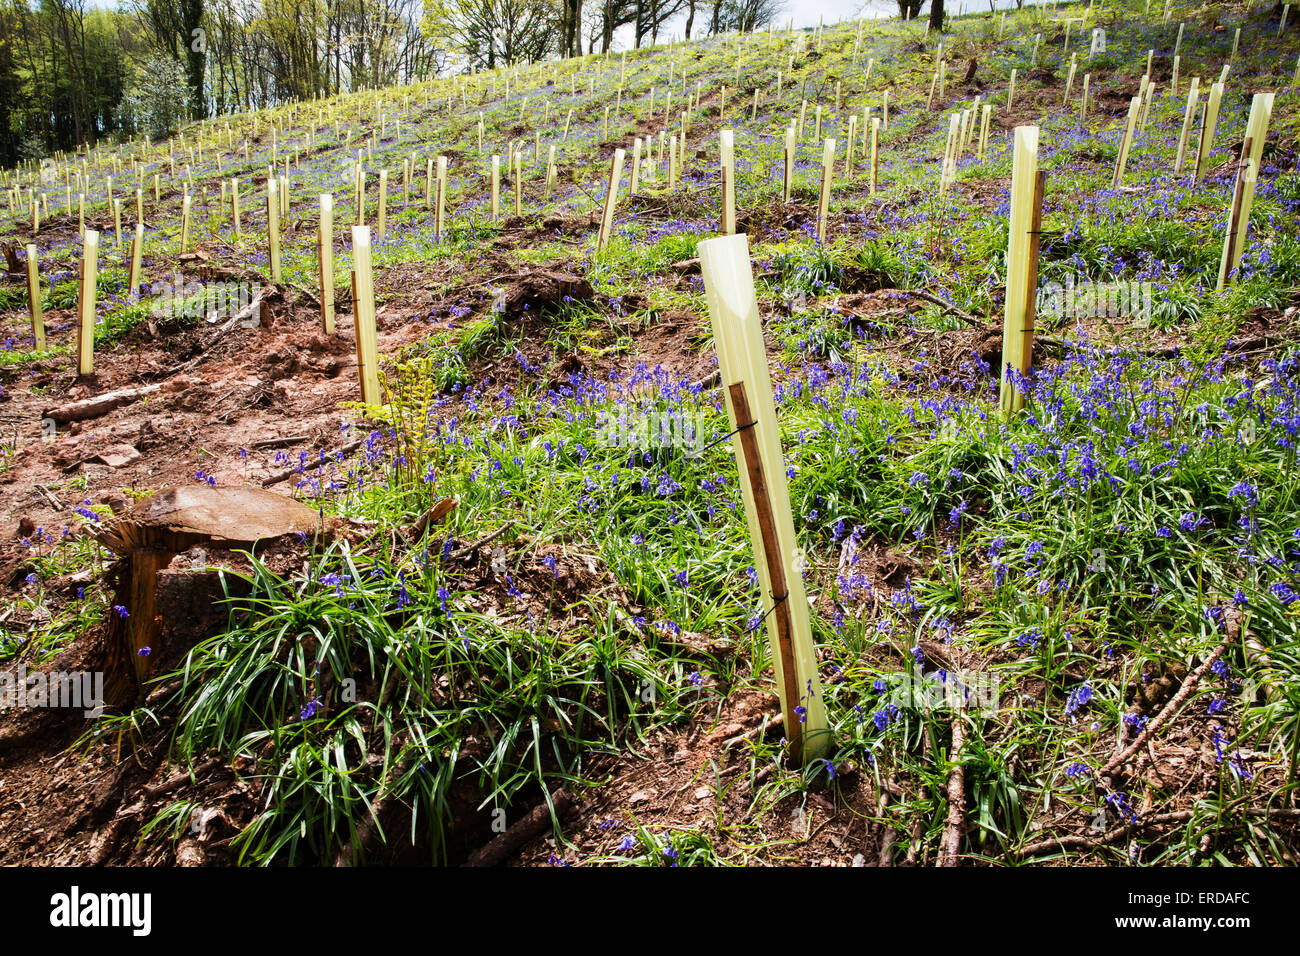 Conifer clearance replaced by native species saplings in plastic tree guards in Priors Wood Somerset England - Stock Image